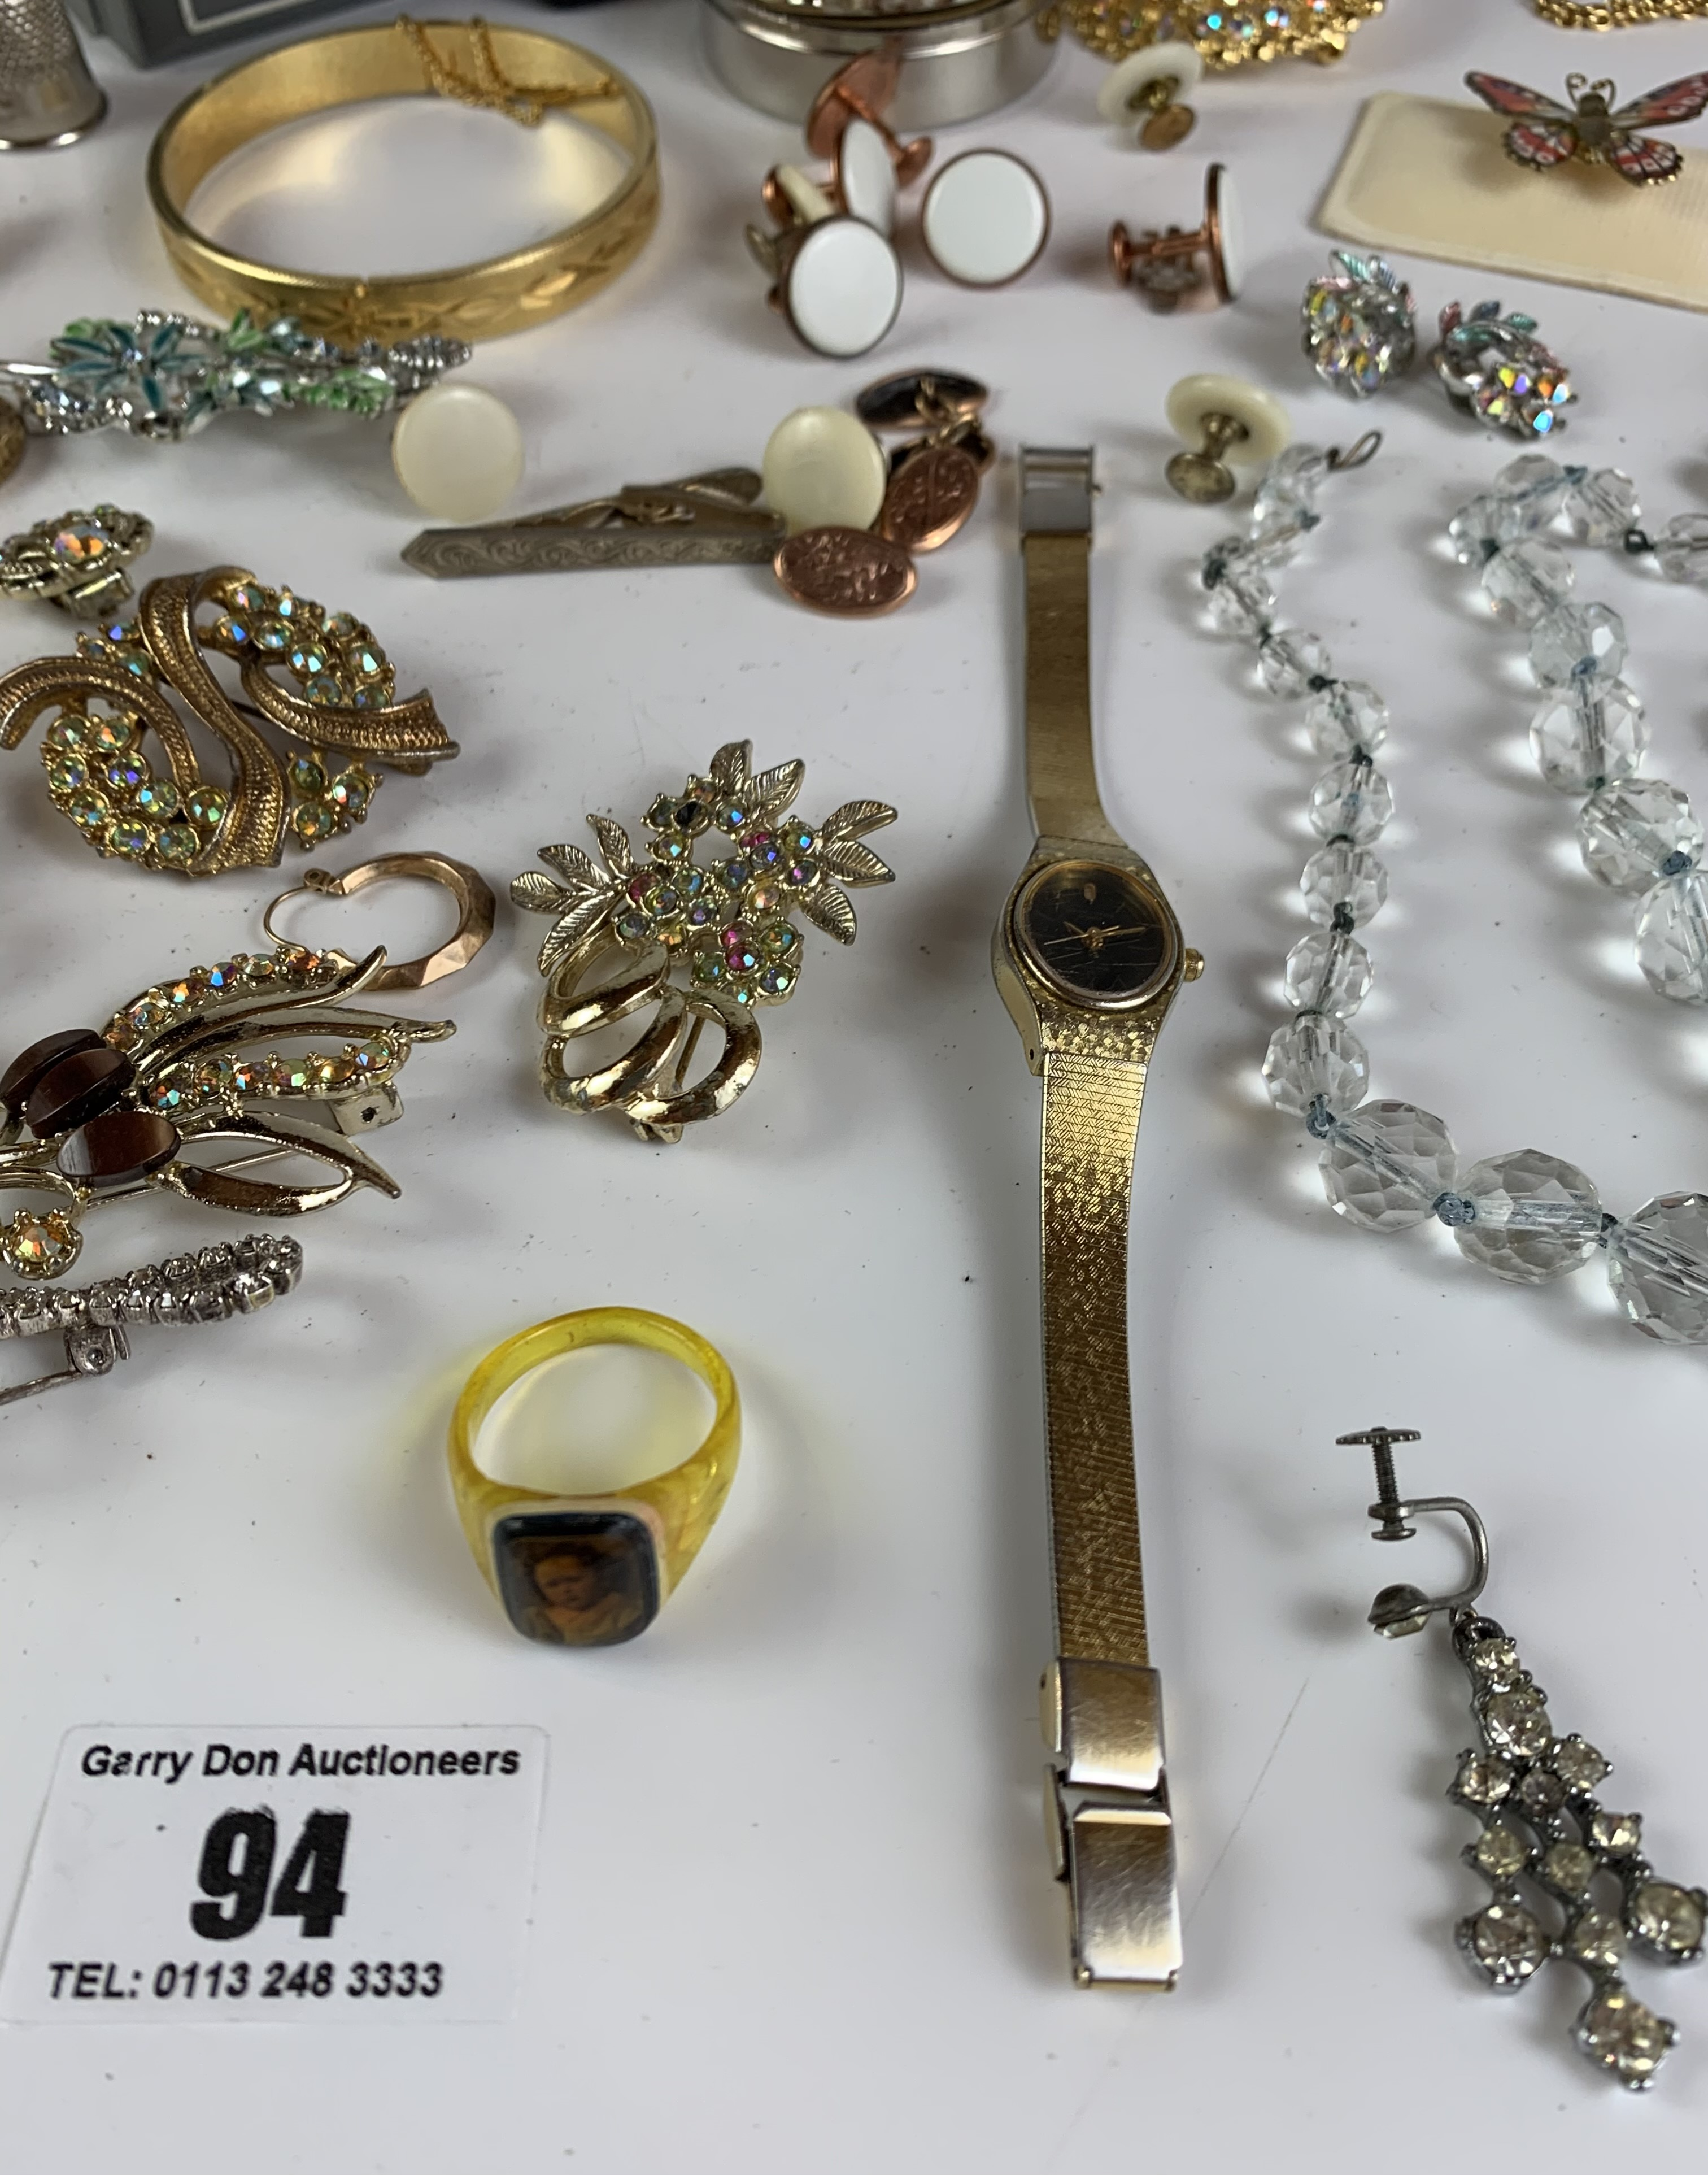 Large bag of assorted dress jewellery including necklaces, bracelets, brooches, earrings etc. - Image 6 of 11